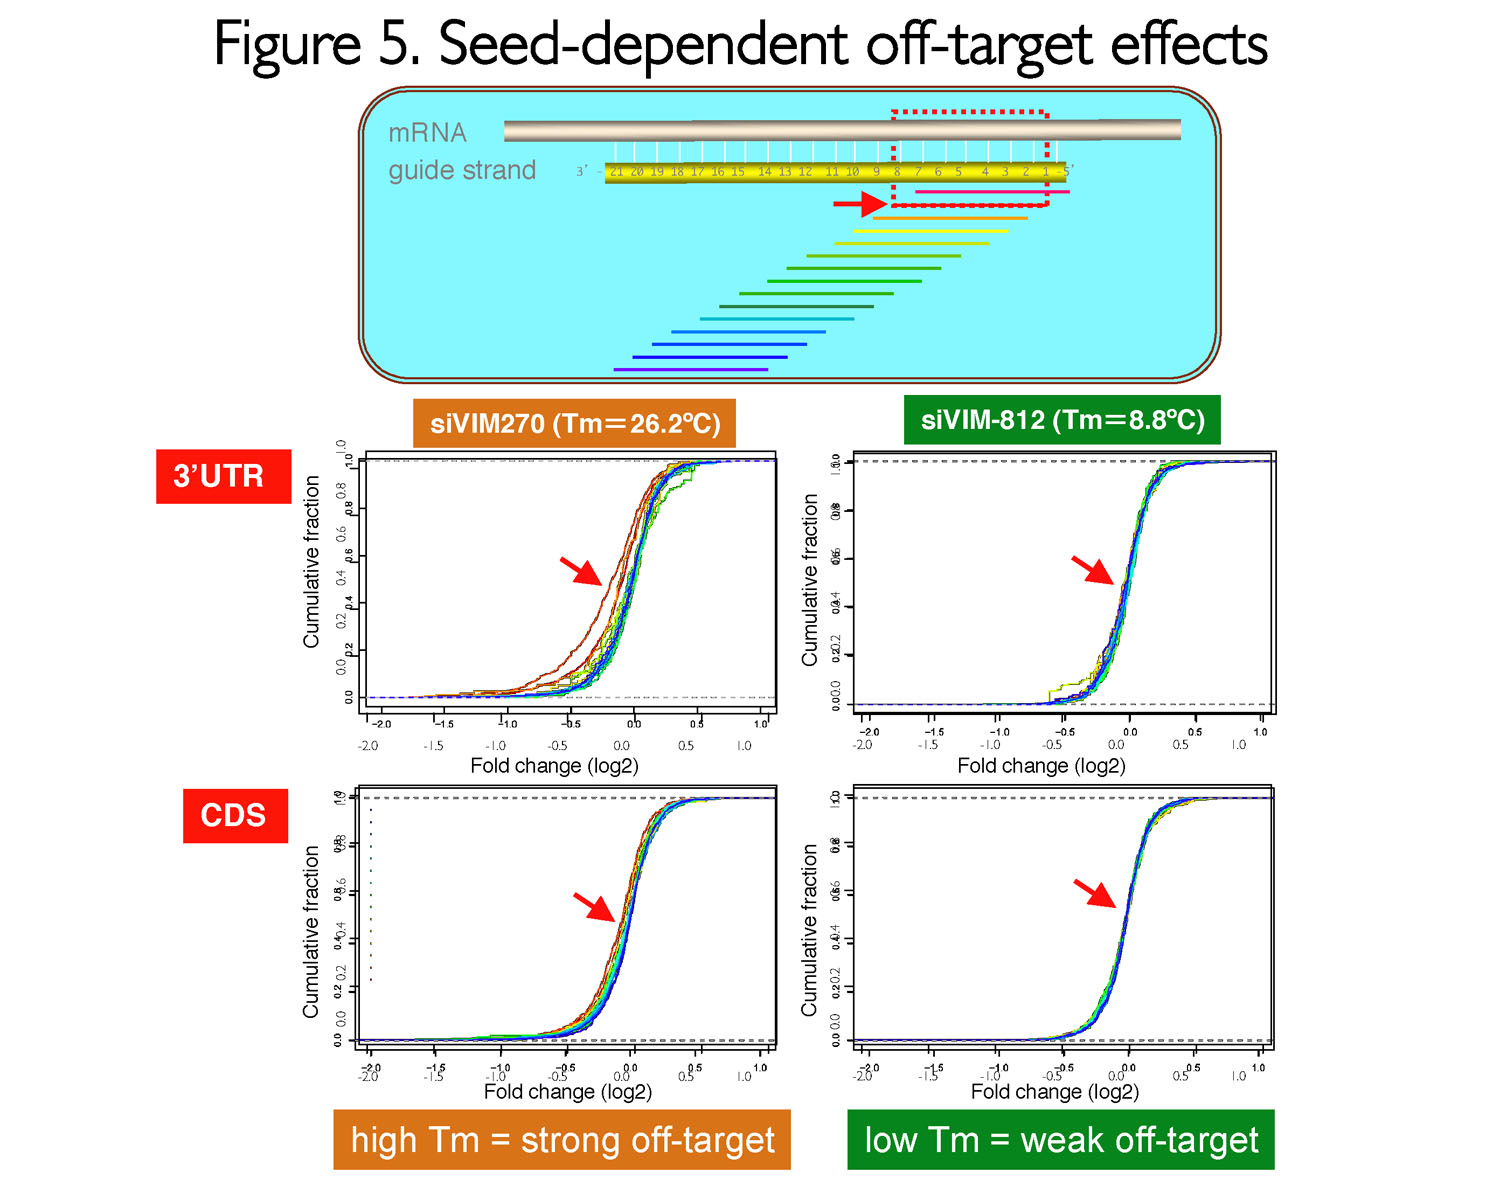 Seed-dependent off-target effect